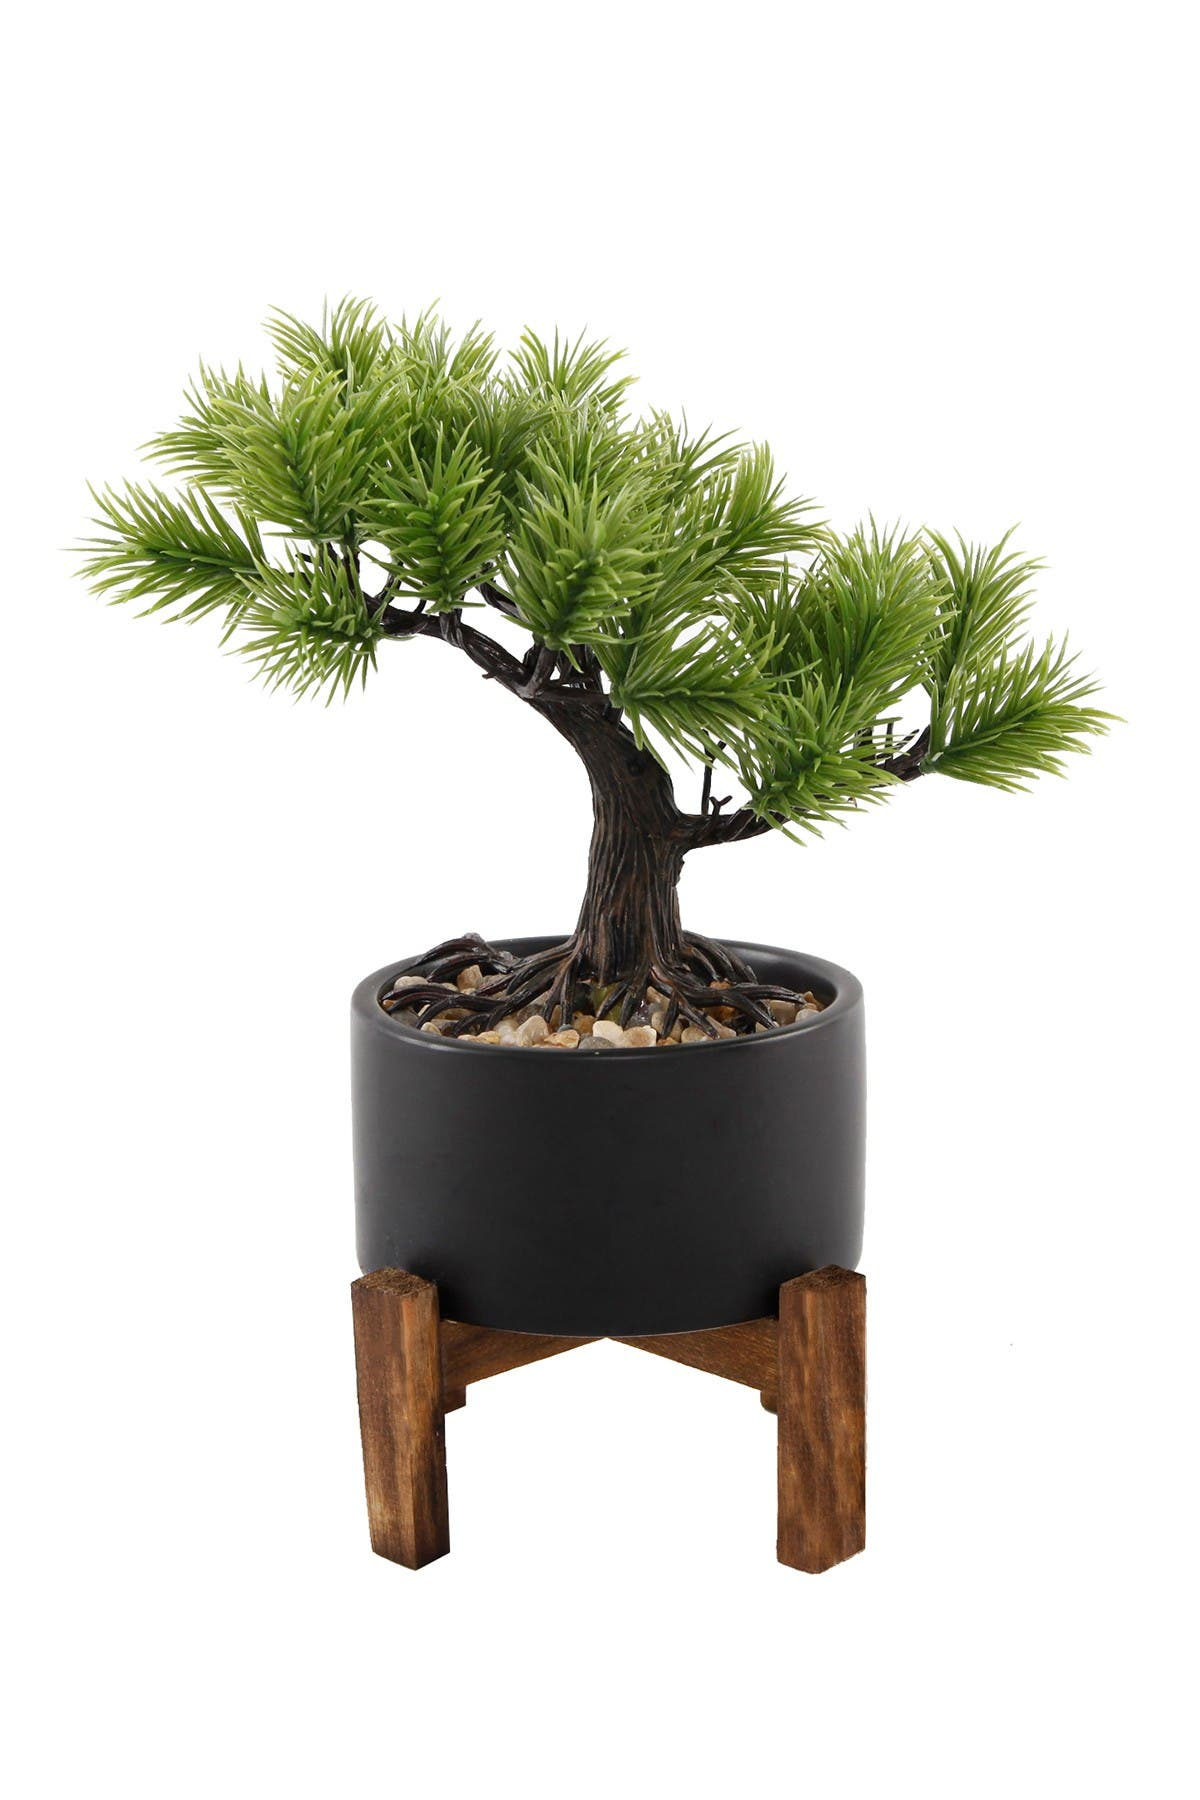 Flora Bunda 9 2 Bonsai Tree In 3 75 Ceramic Pot On Wood Stand Hautelook